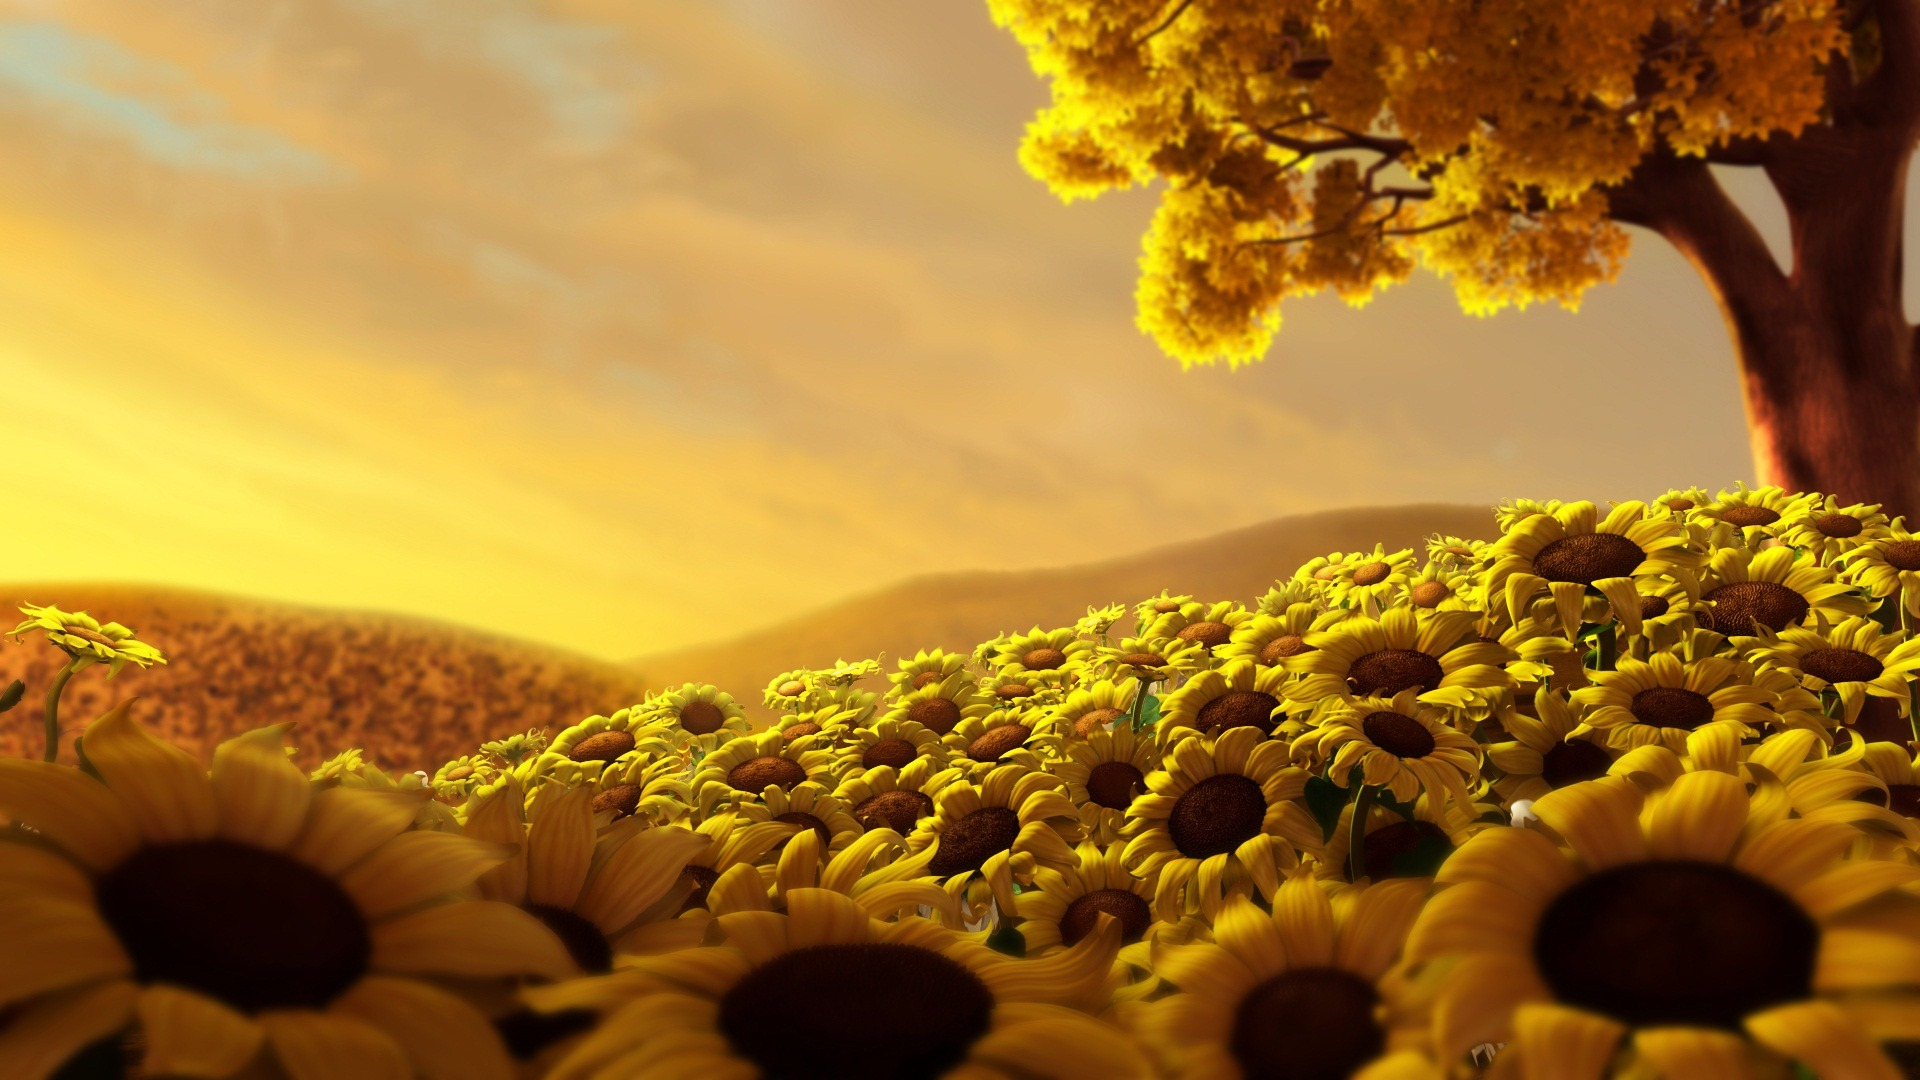 Wall Papers Flowers Wallpaper